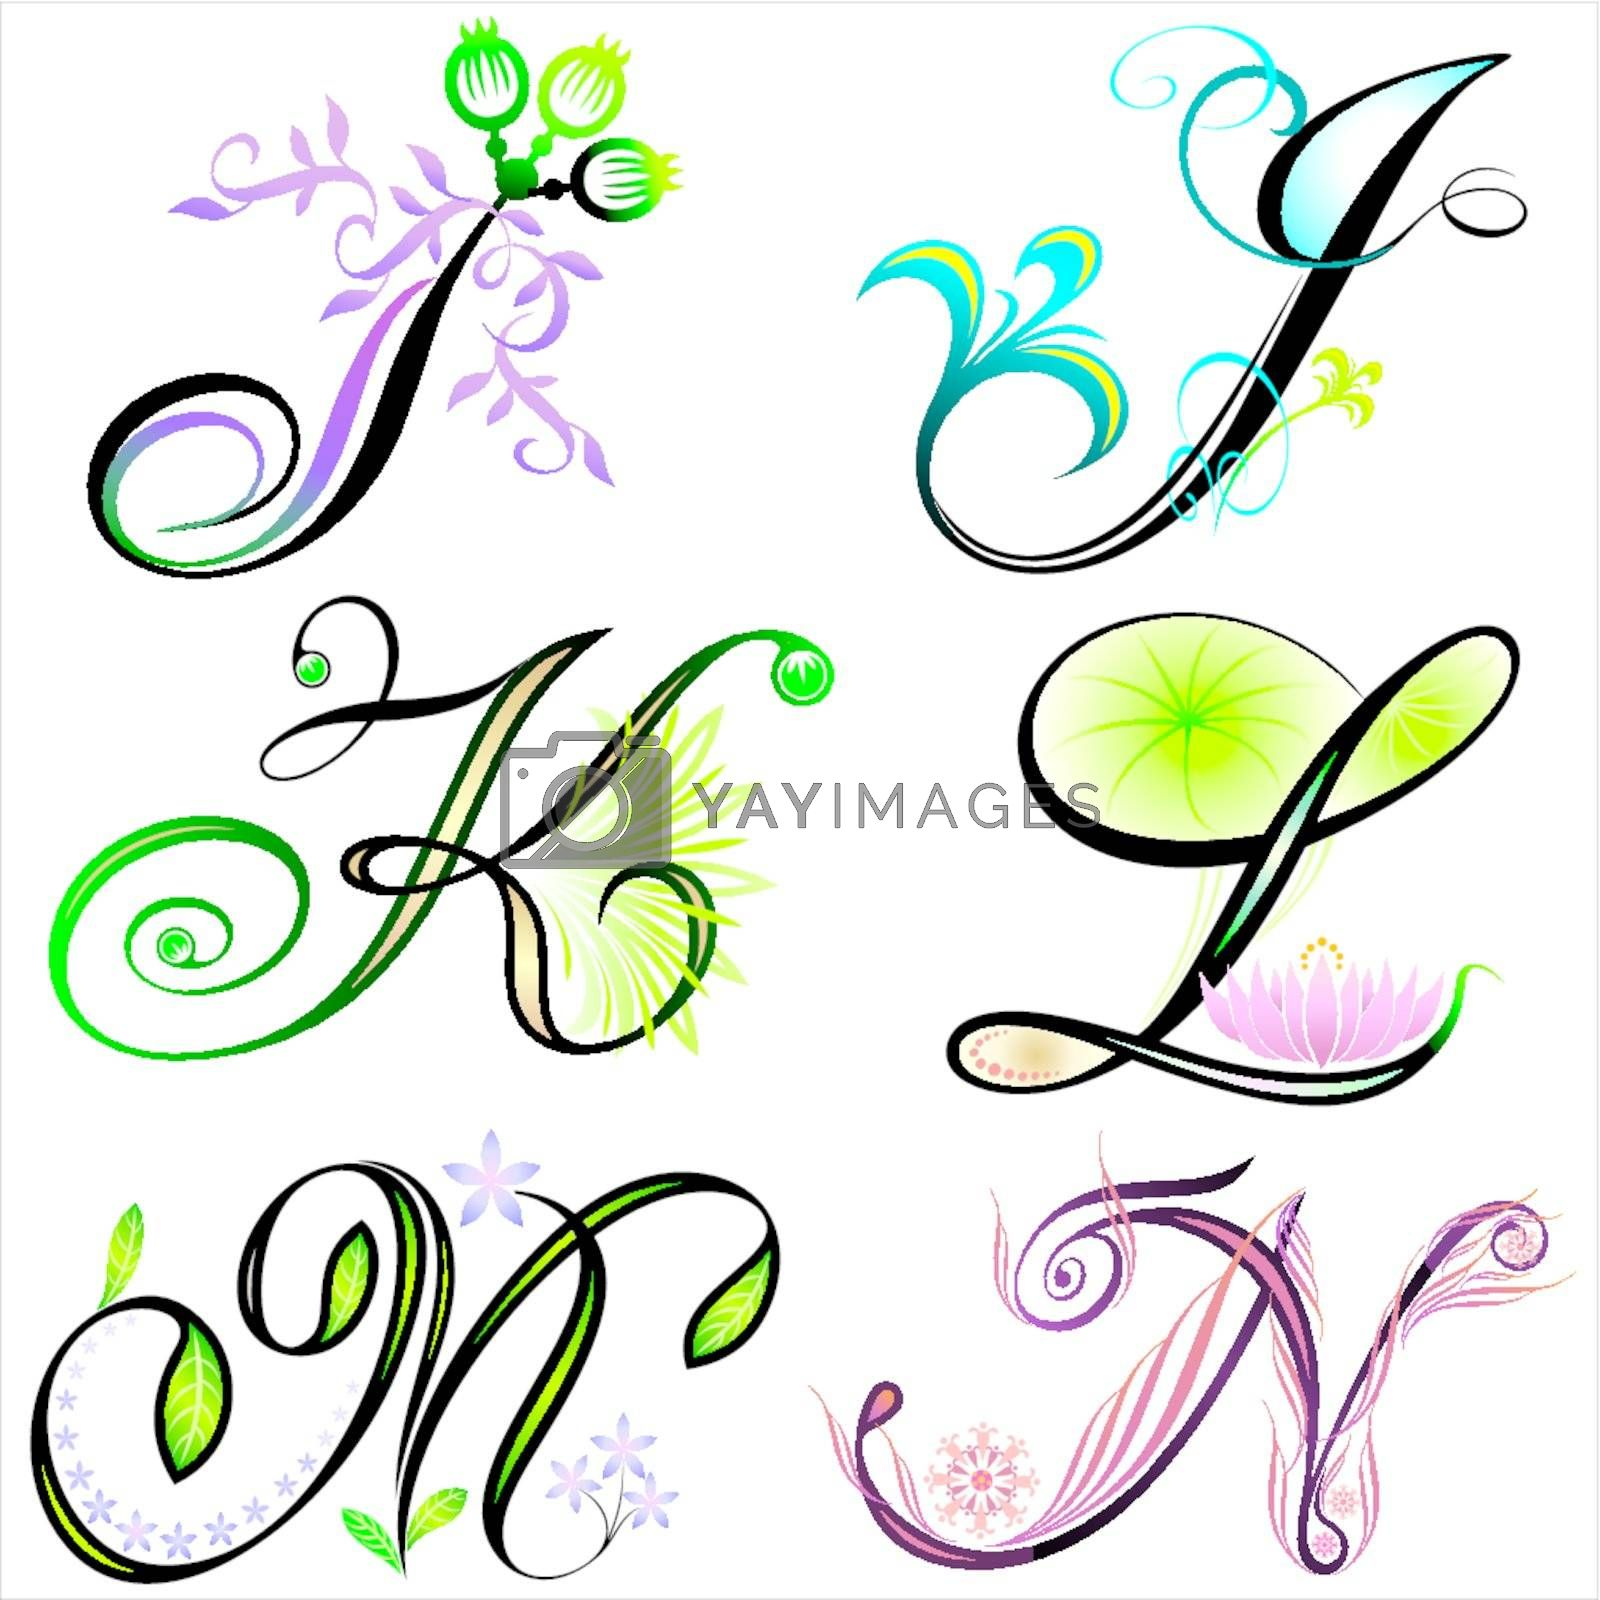 Royalty free image of Alphabets Elements I To N by yewkeo